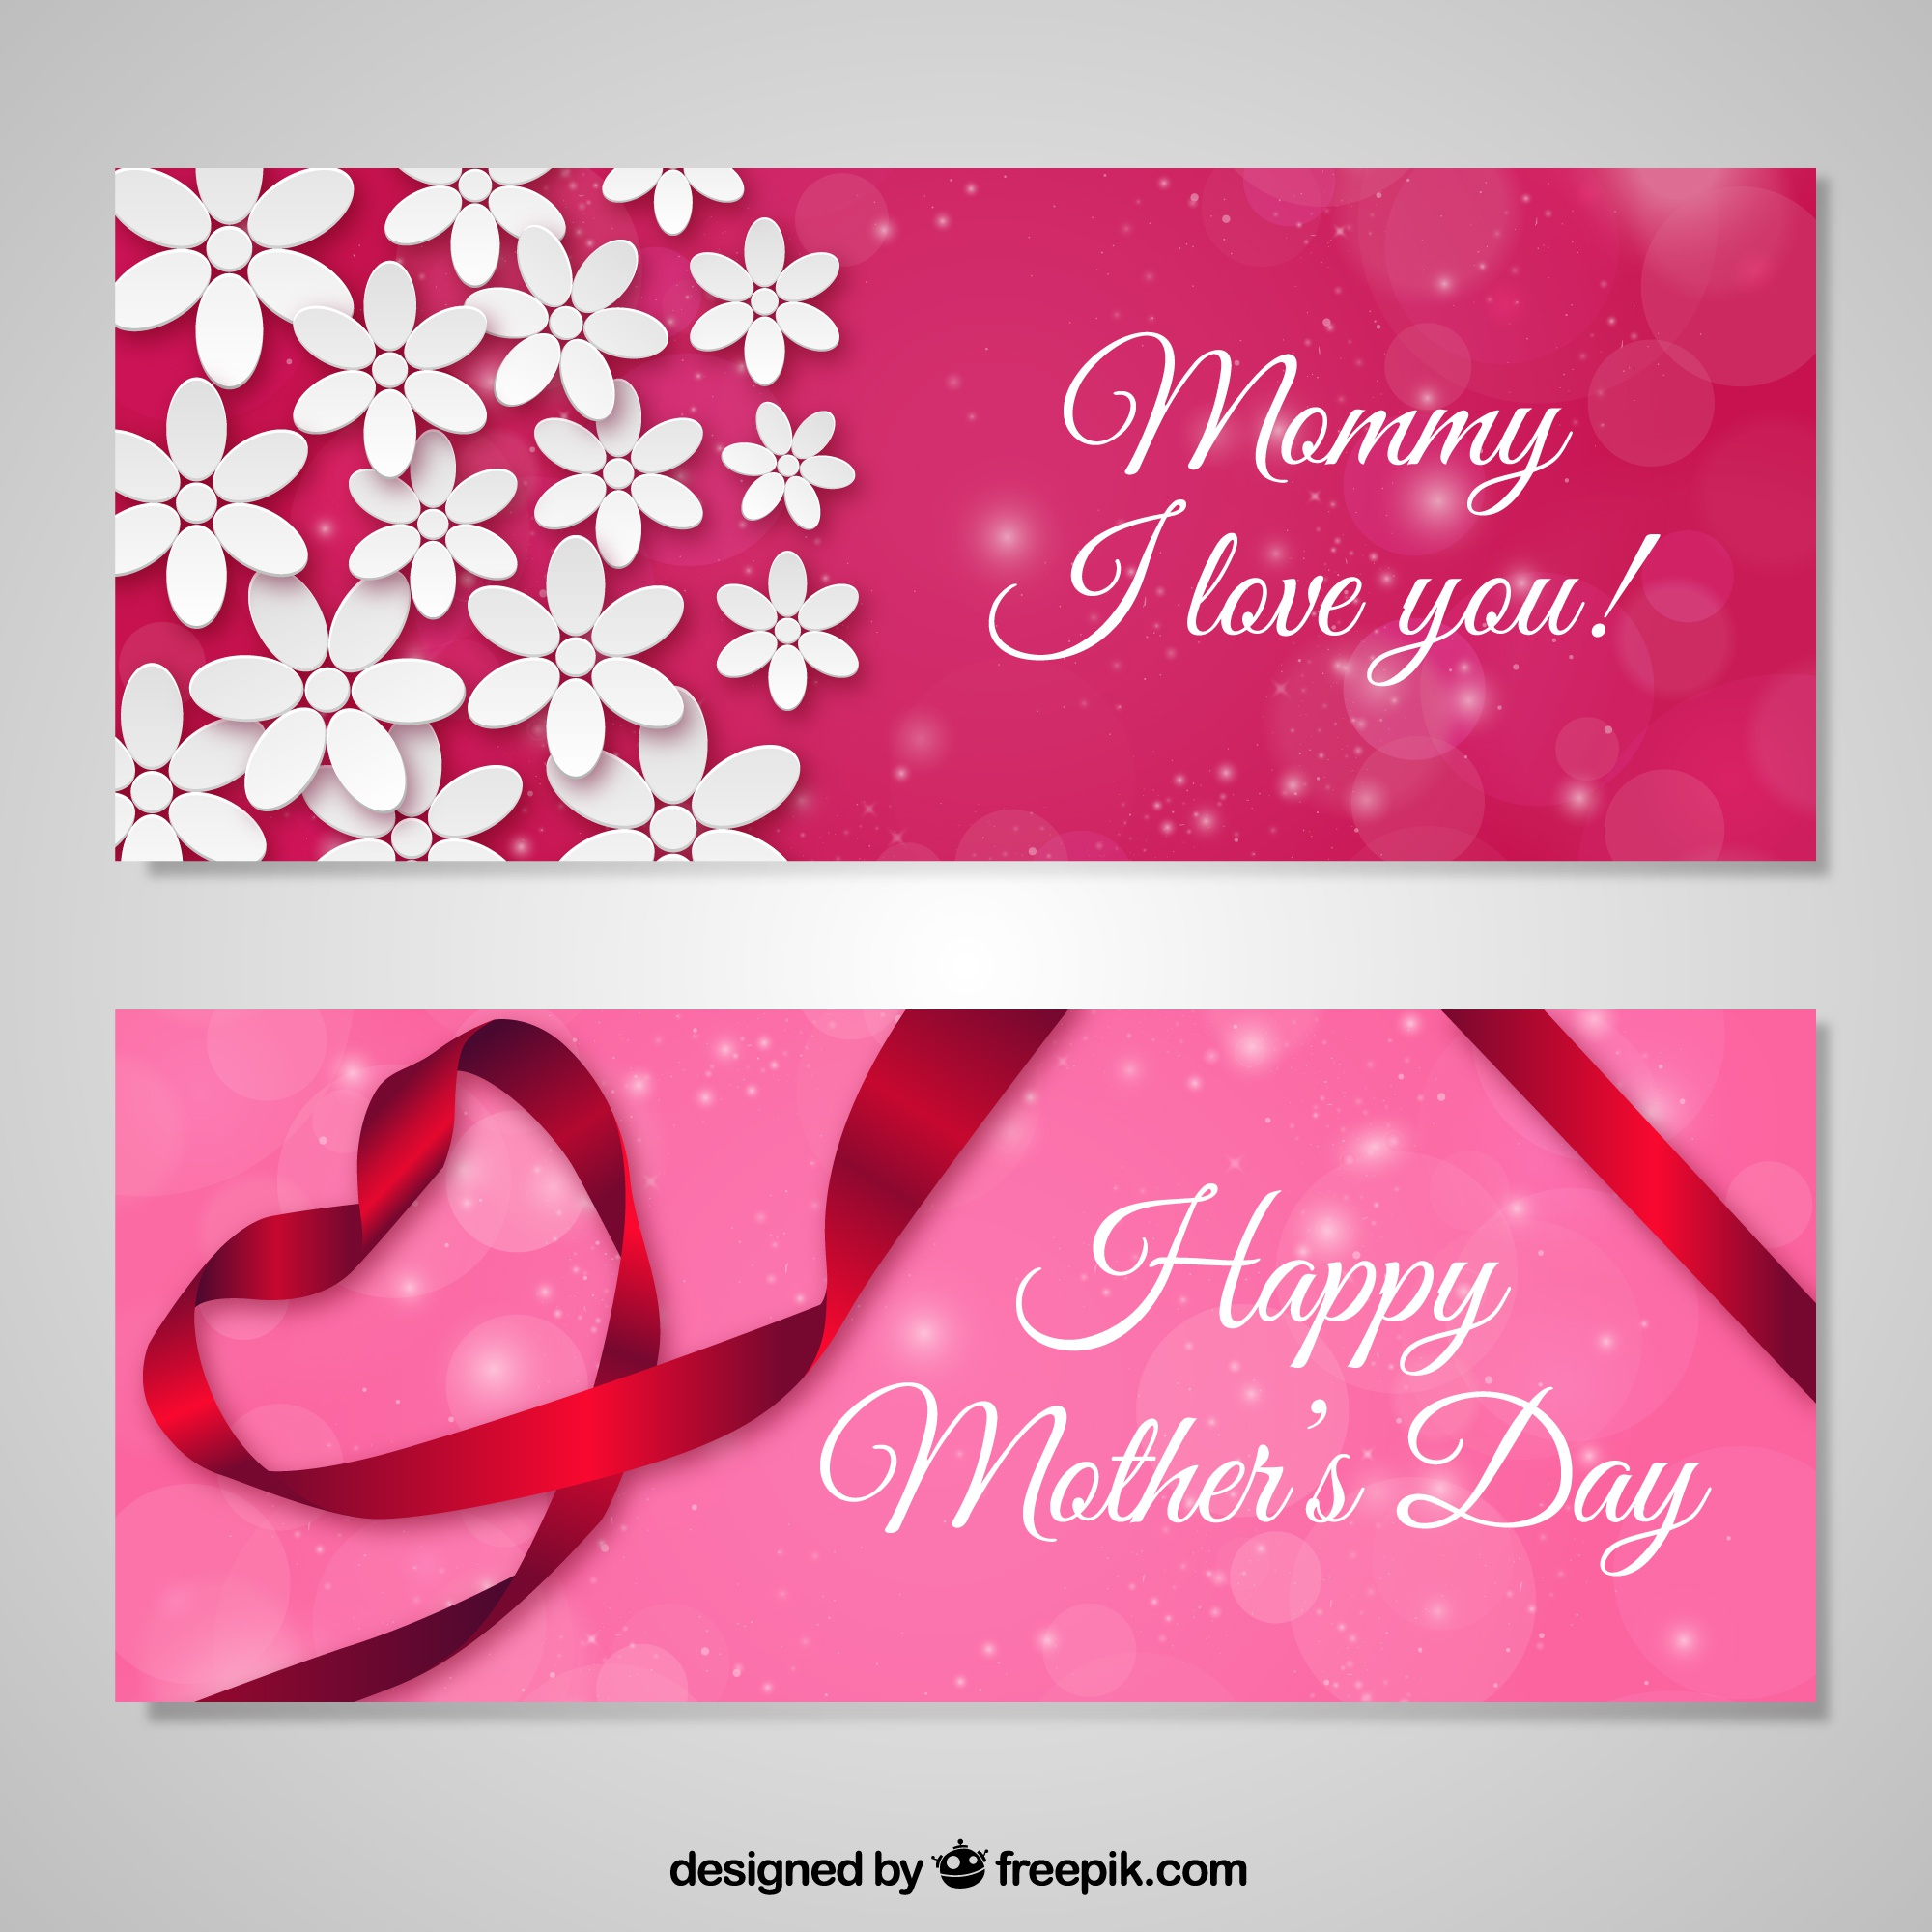 Love banners happy mothers day